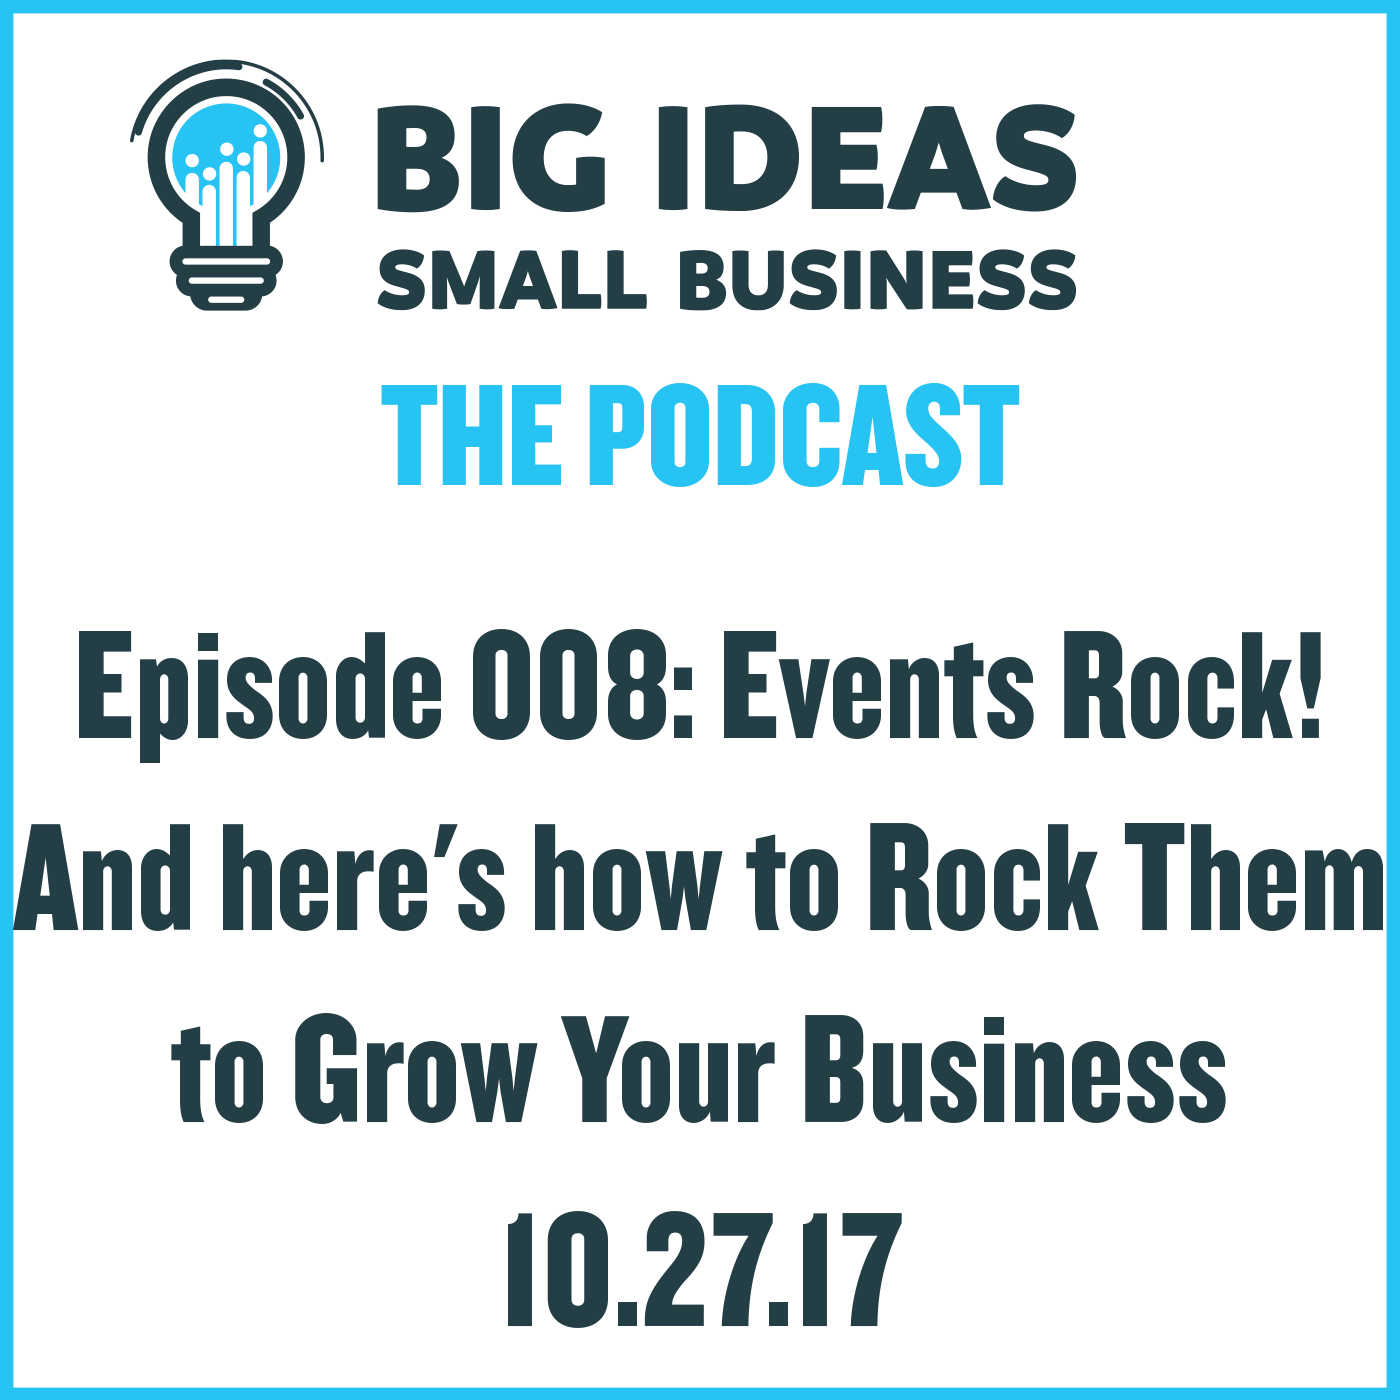 Events Rock! And here's how to Rock Them to Grow Your Business – Big Ideas Small Business Podcast